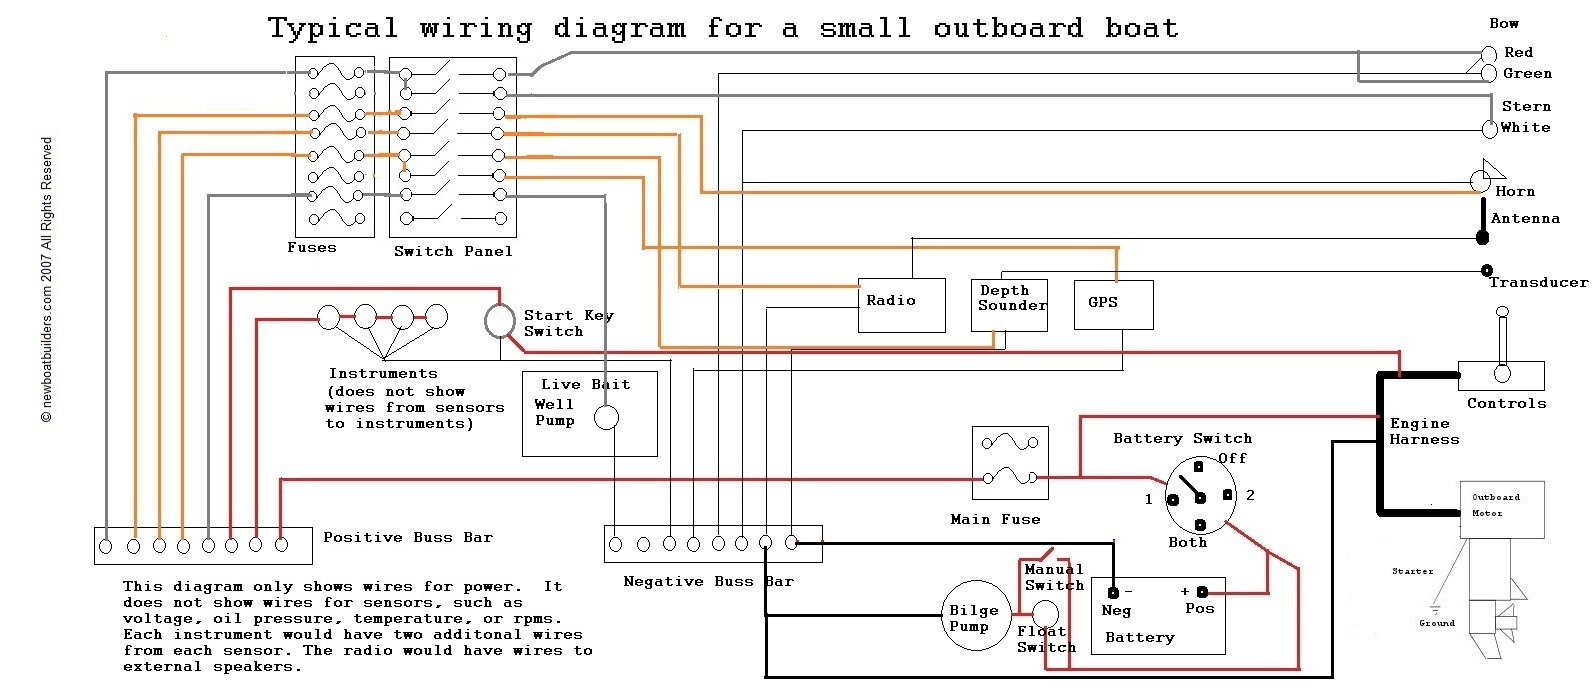 circuit6 boat building standards basic electricity wiring your boat Cat 279C Wiring-Diagram Door Closure at gsmx.co